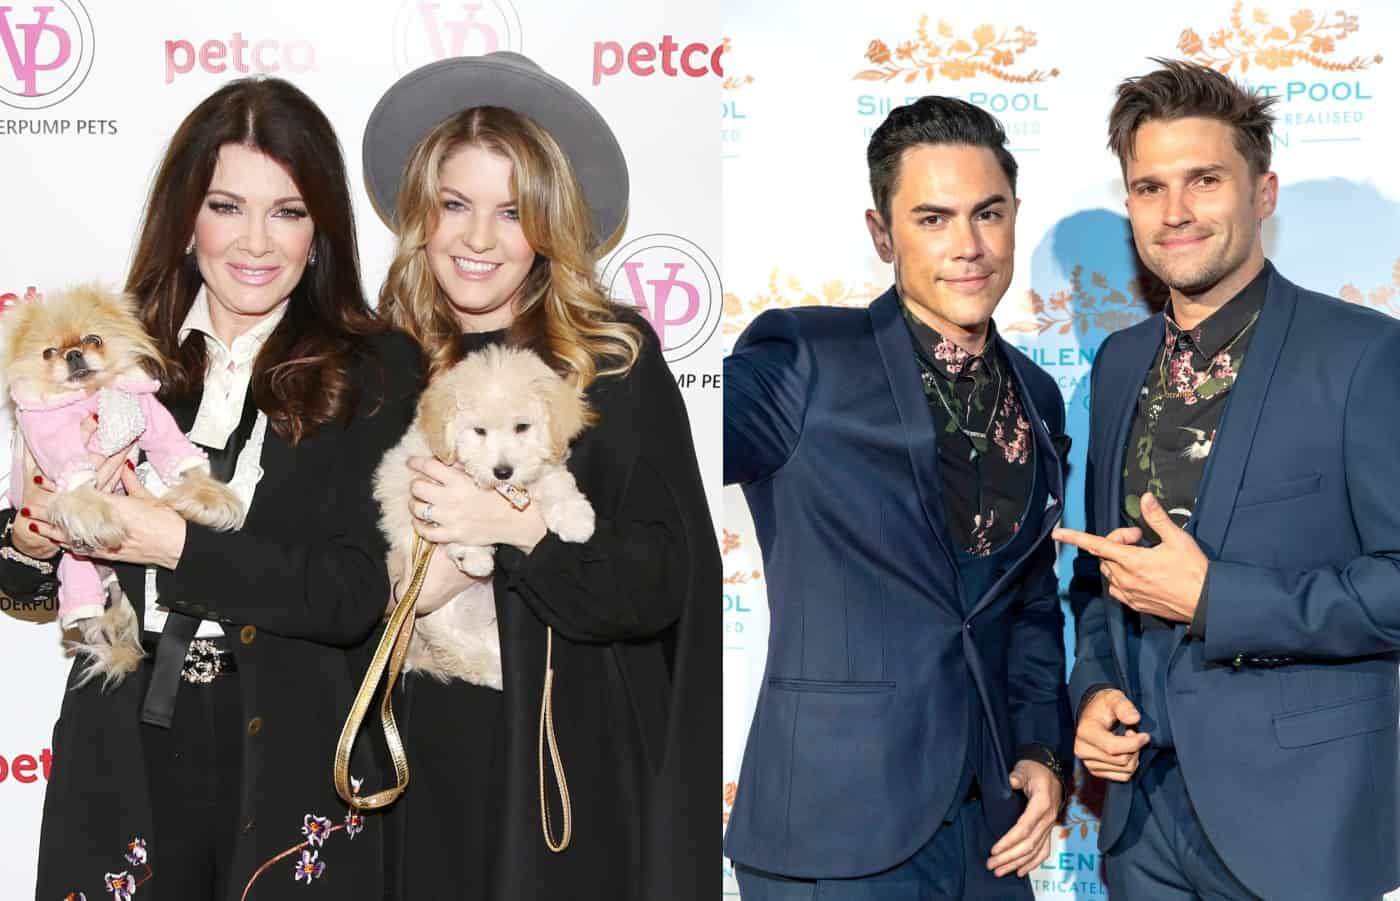 Vanderpump Rules Lisa Vanderpump Weighs In On Tom Sandoval and Tom Schwartz's Comments about Pandora Sabo